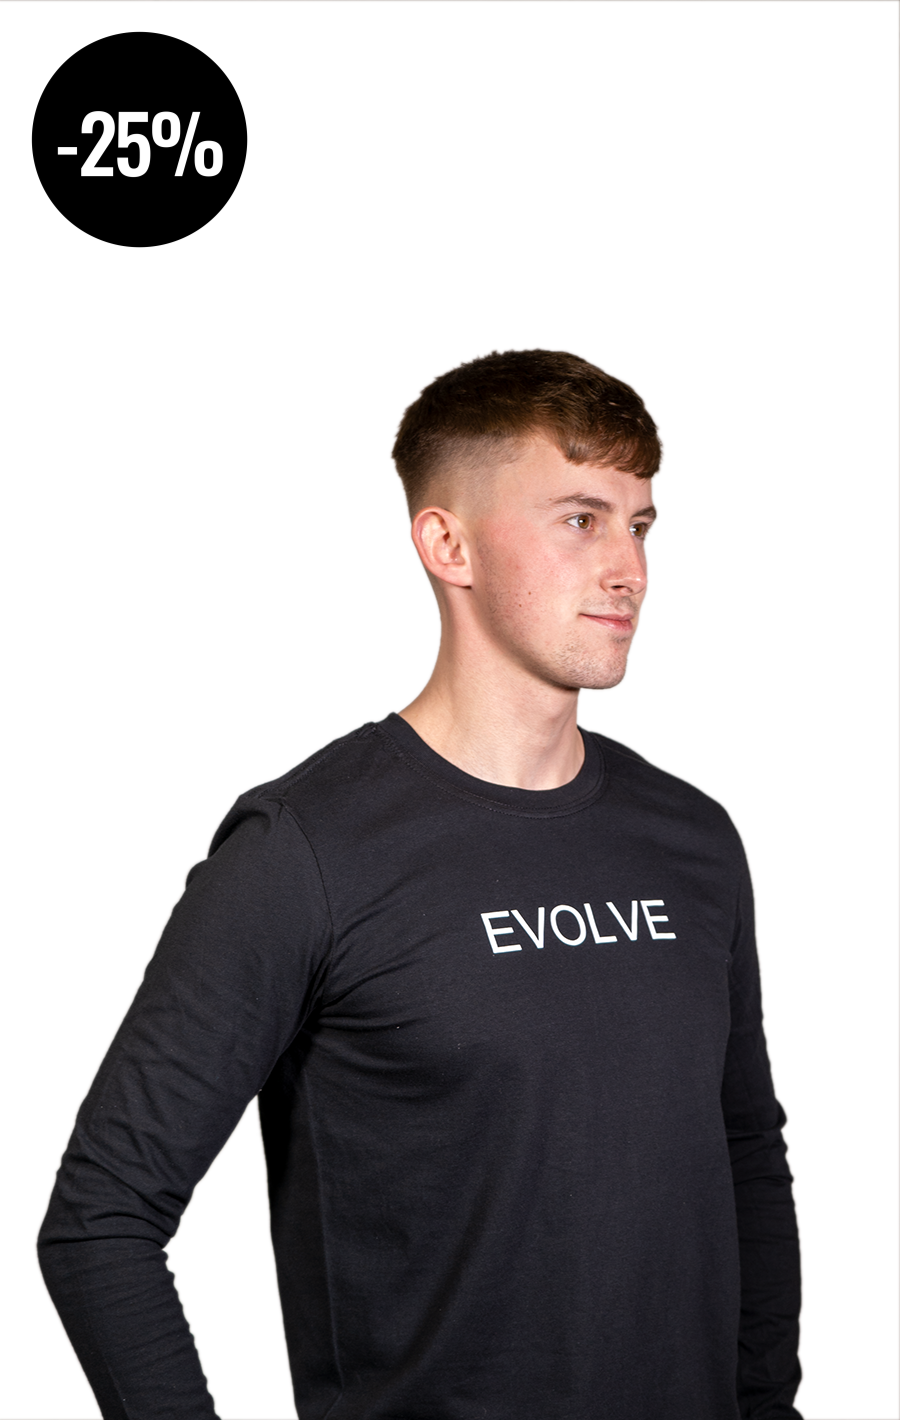 Long Sleeve Black T Shirt with White Evolve